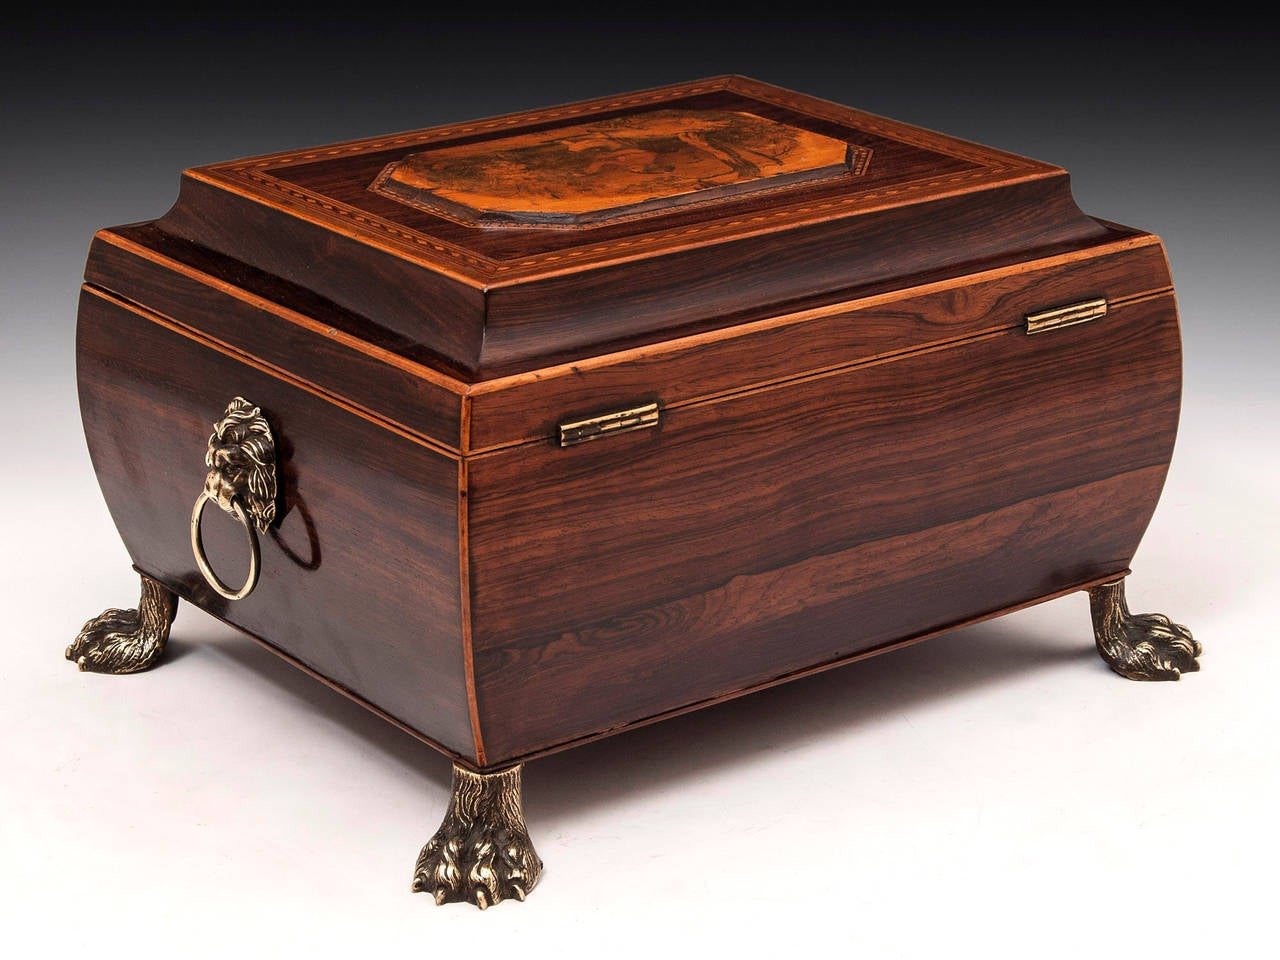 19th Century Regency Bombe Shape Mahogany Sewing Box In Good Condition For Sale In Northampton, United Kingdom